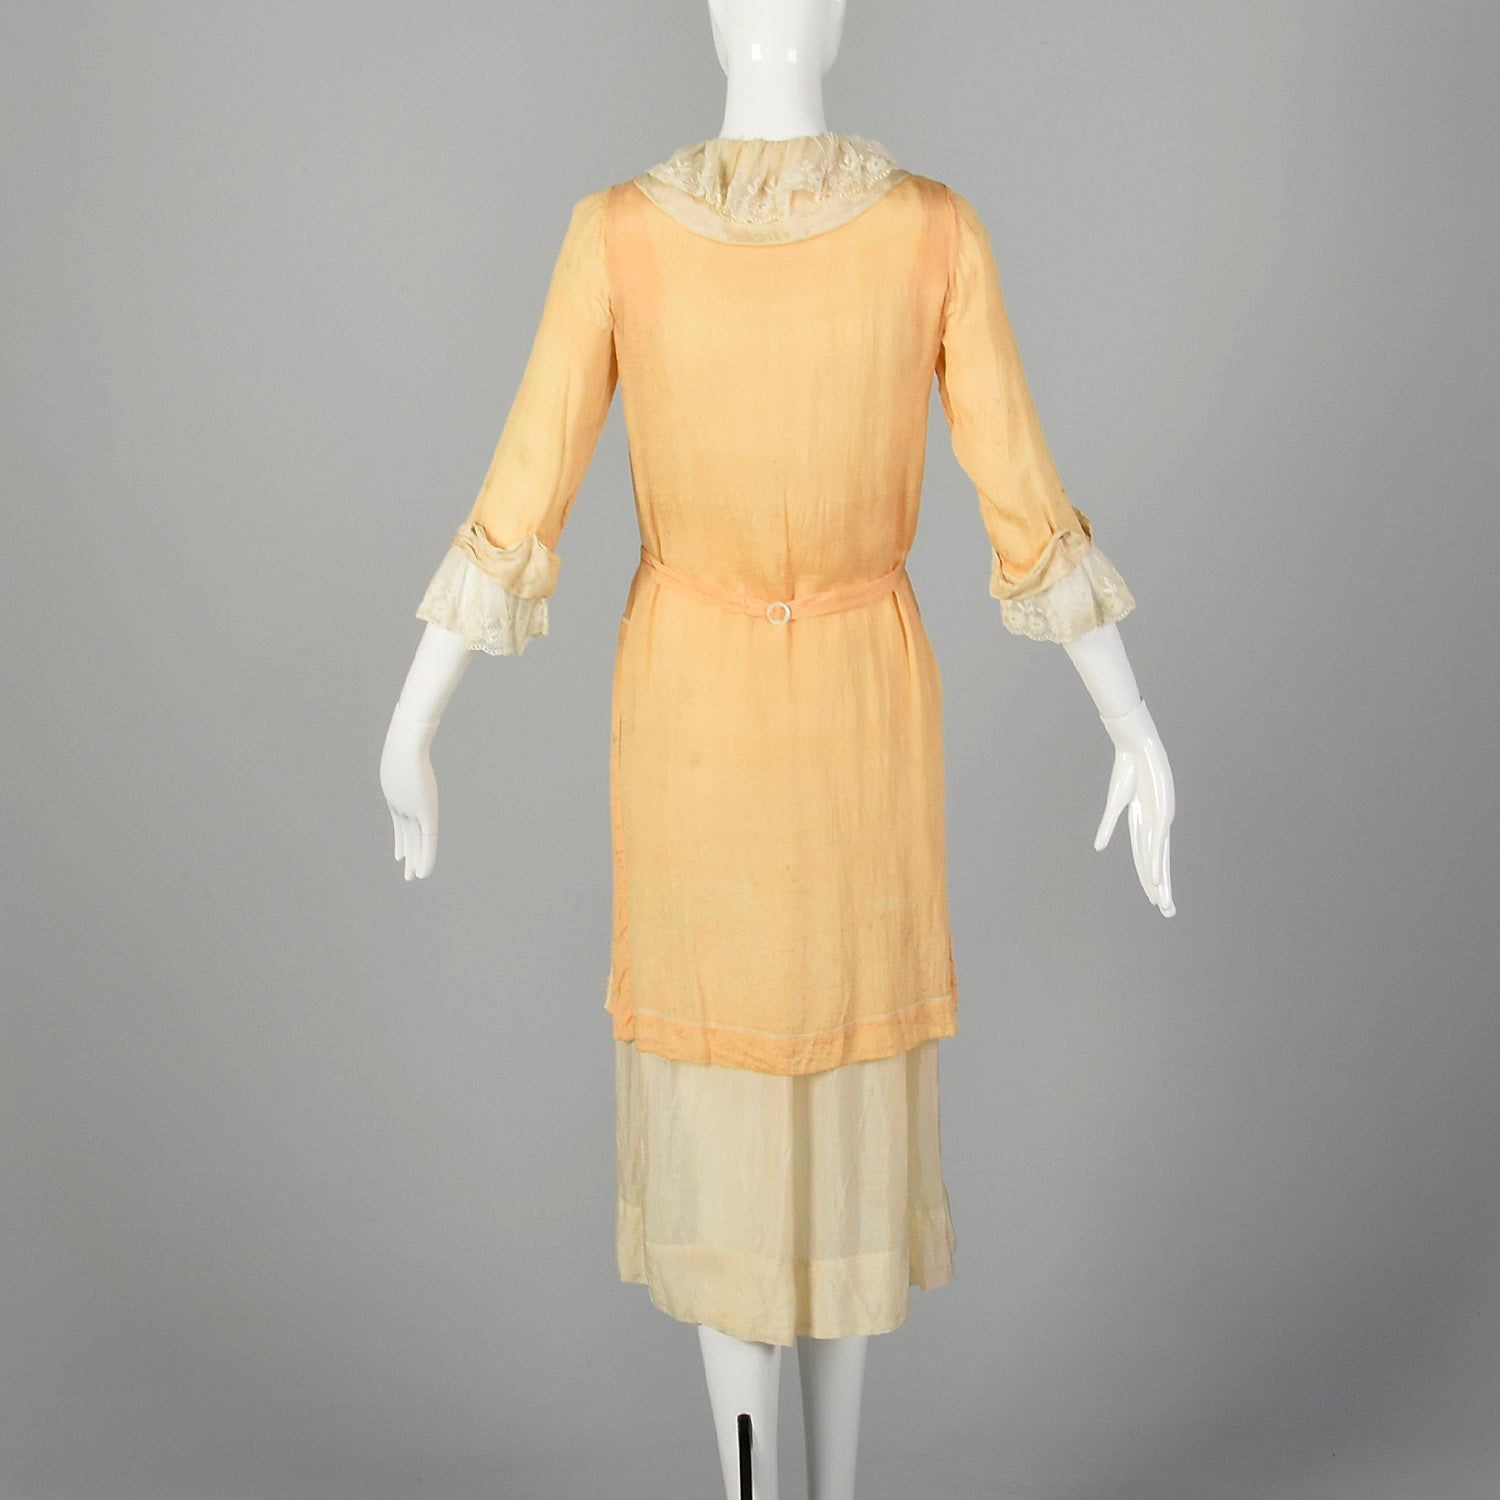 1910s Edwardian Coral and Ivory Day Dress